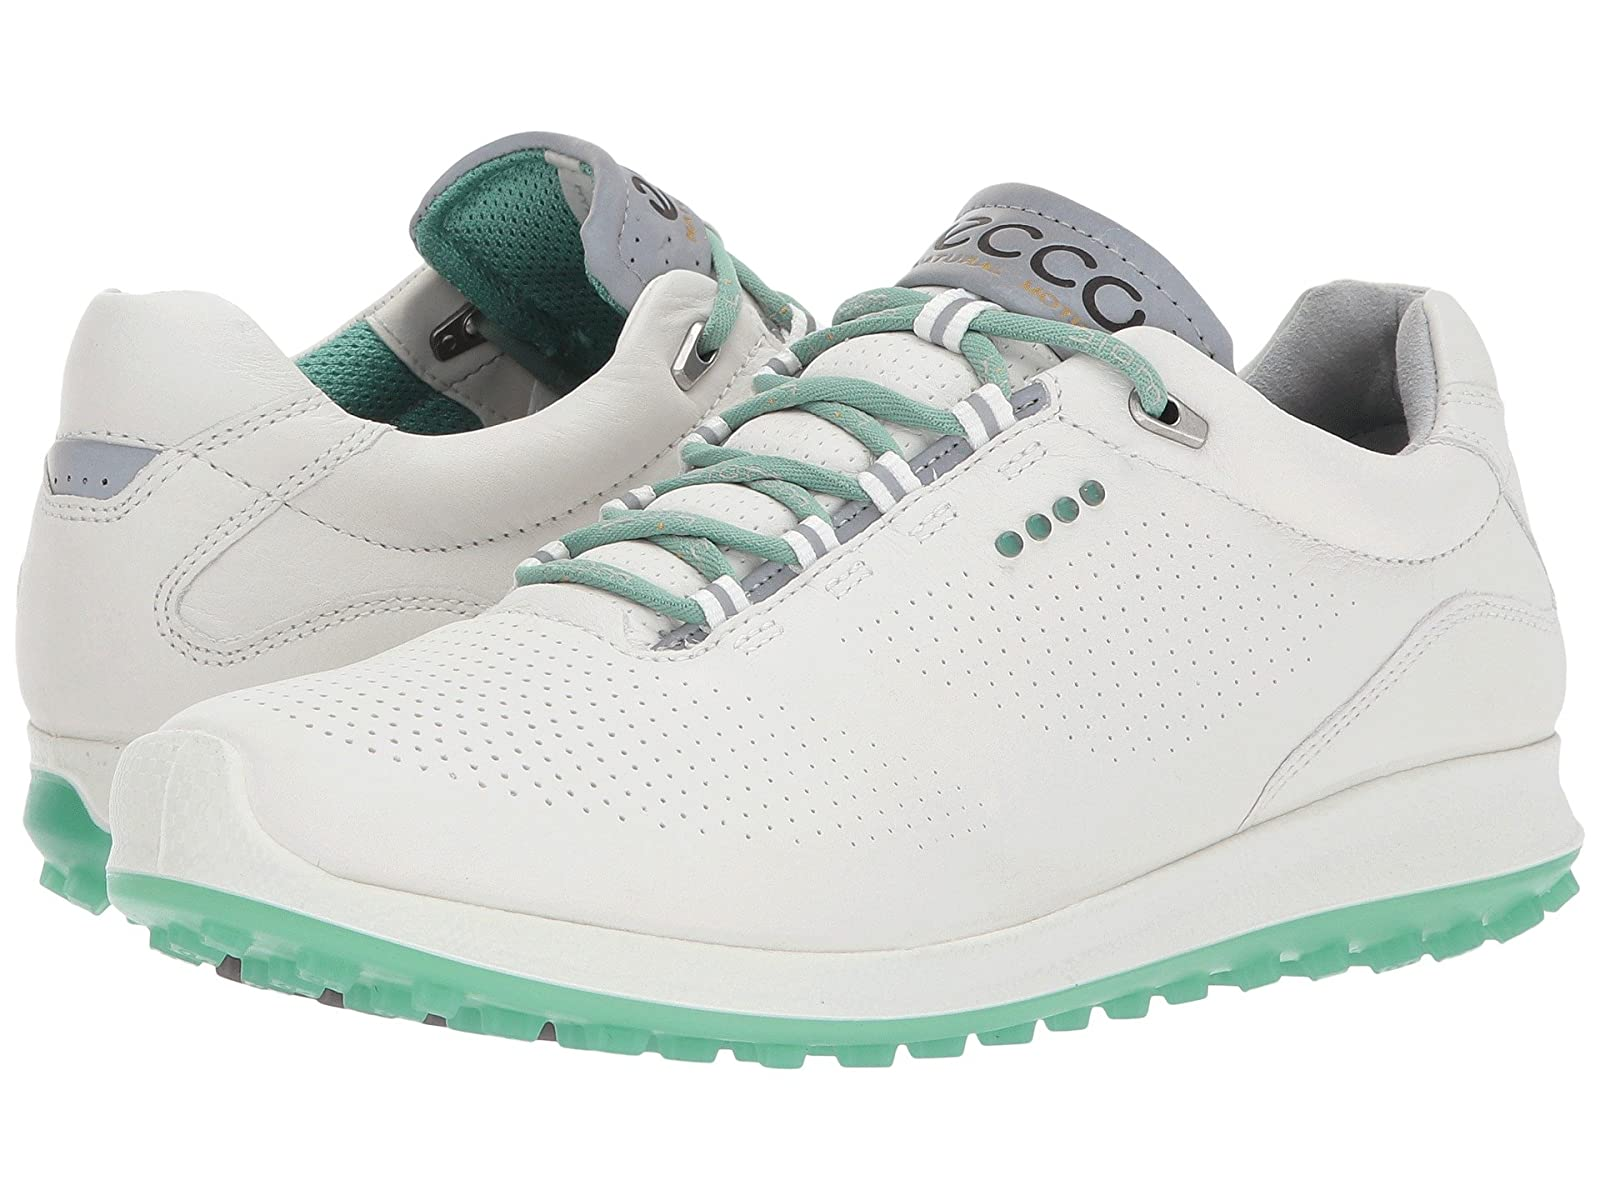 ECCO Golf BIOM Hybrid 2 PerfAtmospheric grades have affordable shoes